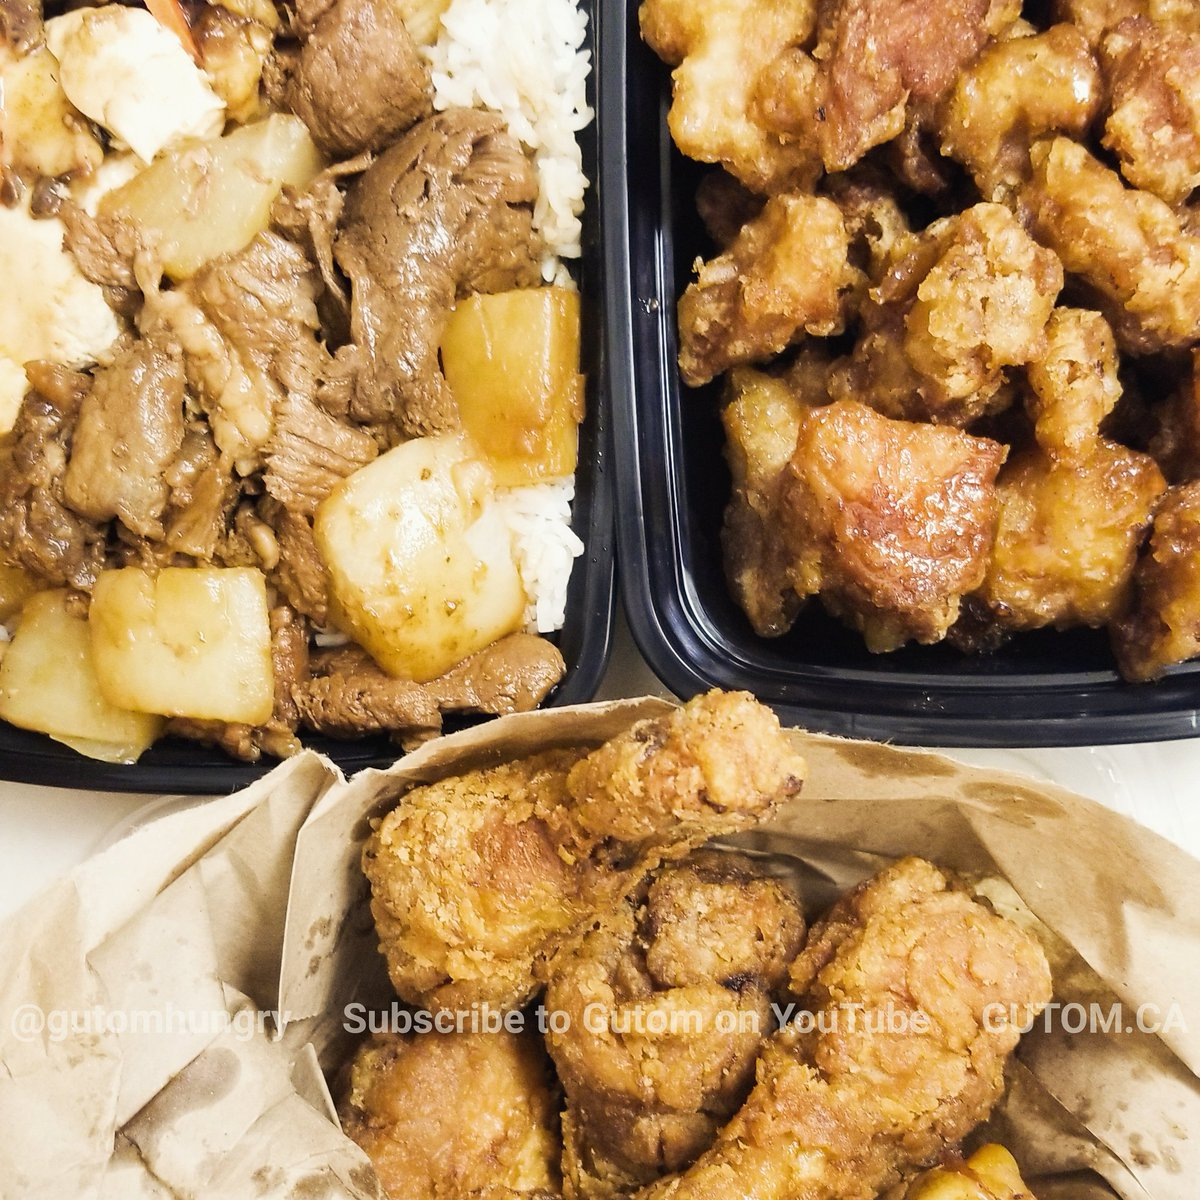 Supporting #takeout businesses! #chinesefood #friedchicken #eastvan #food #foodies #foodie #foodblog #vancouver #vancouverbc #yvreats #yvr #vancity #yvrfoodies #vancouverfood #vancouverfoodie #vancouverfoodies #burnaby #newwest #surreybc #richmondbc #Canucks